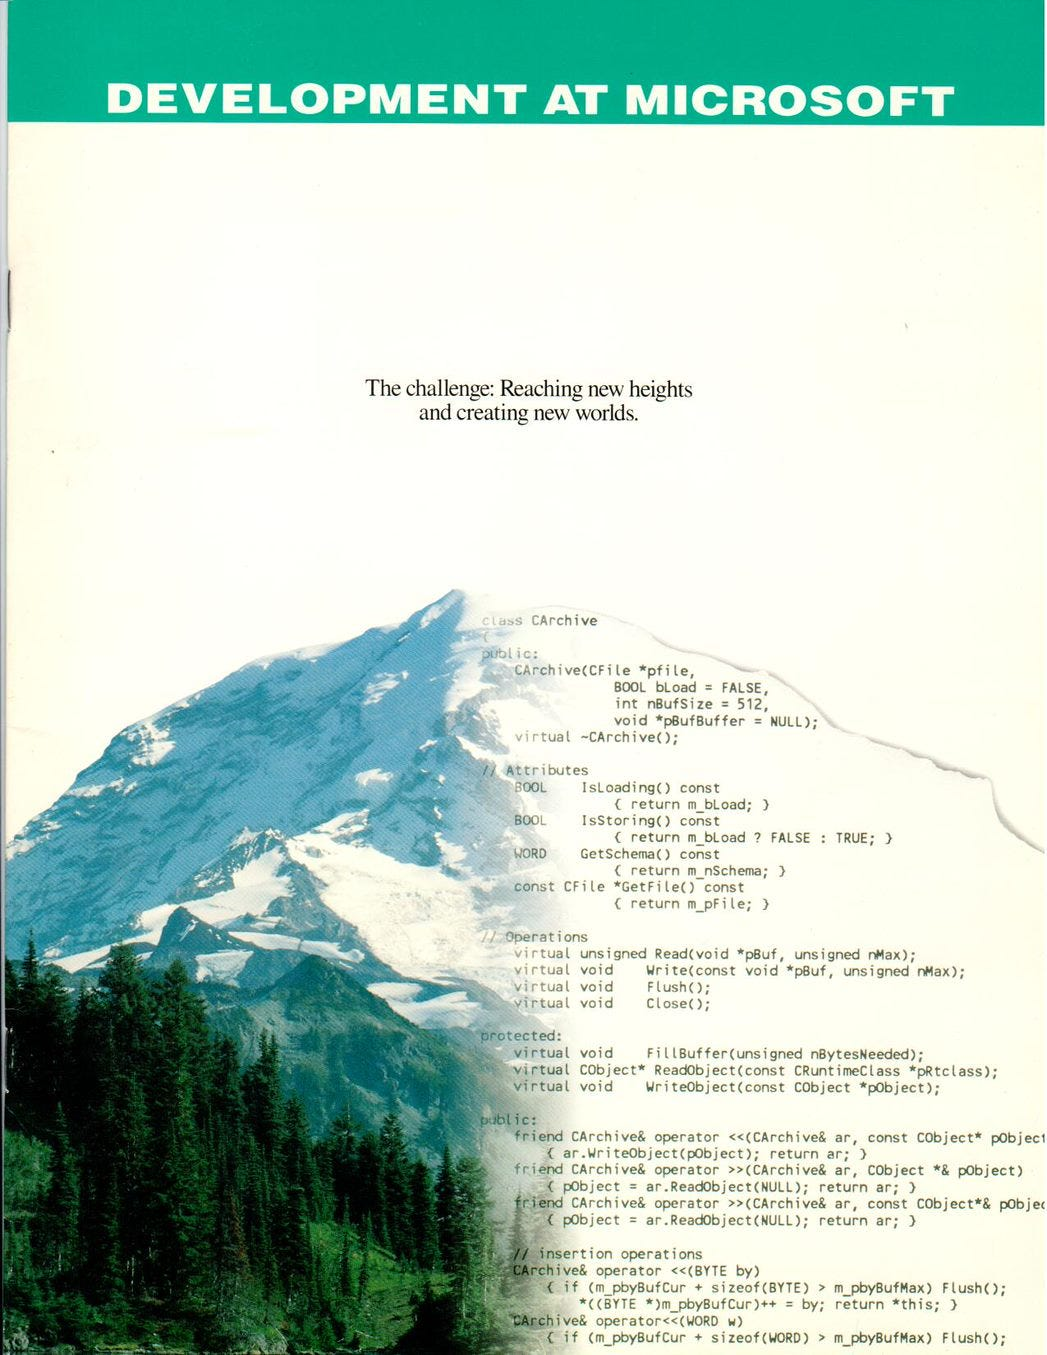 Microsoft recruiting brochure 1991/1992 showing Mr Ranier. The left side of the mountain is a photo of the mountain. The right side is code from AFX showing some of the C++ coding conventions we created.